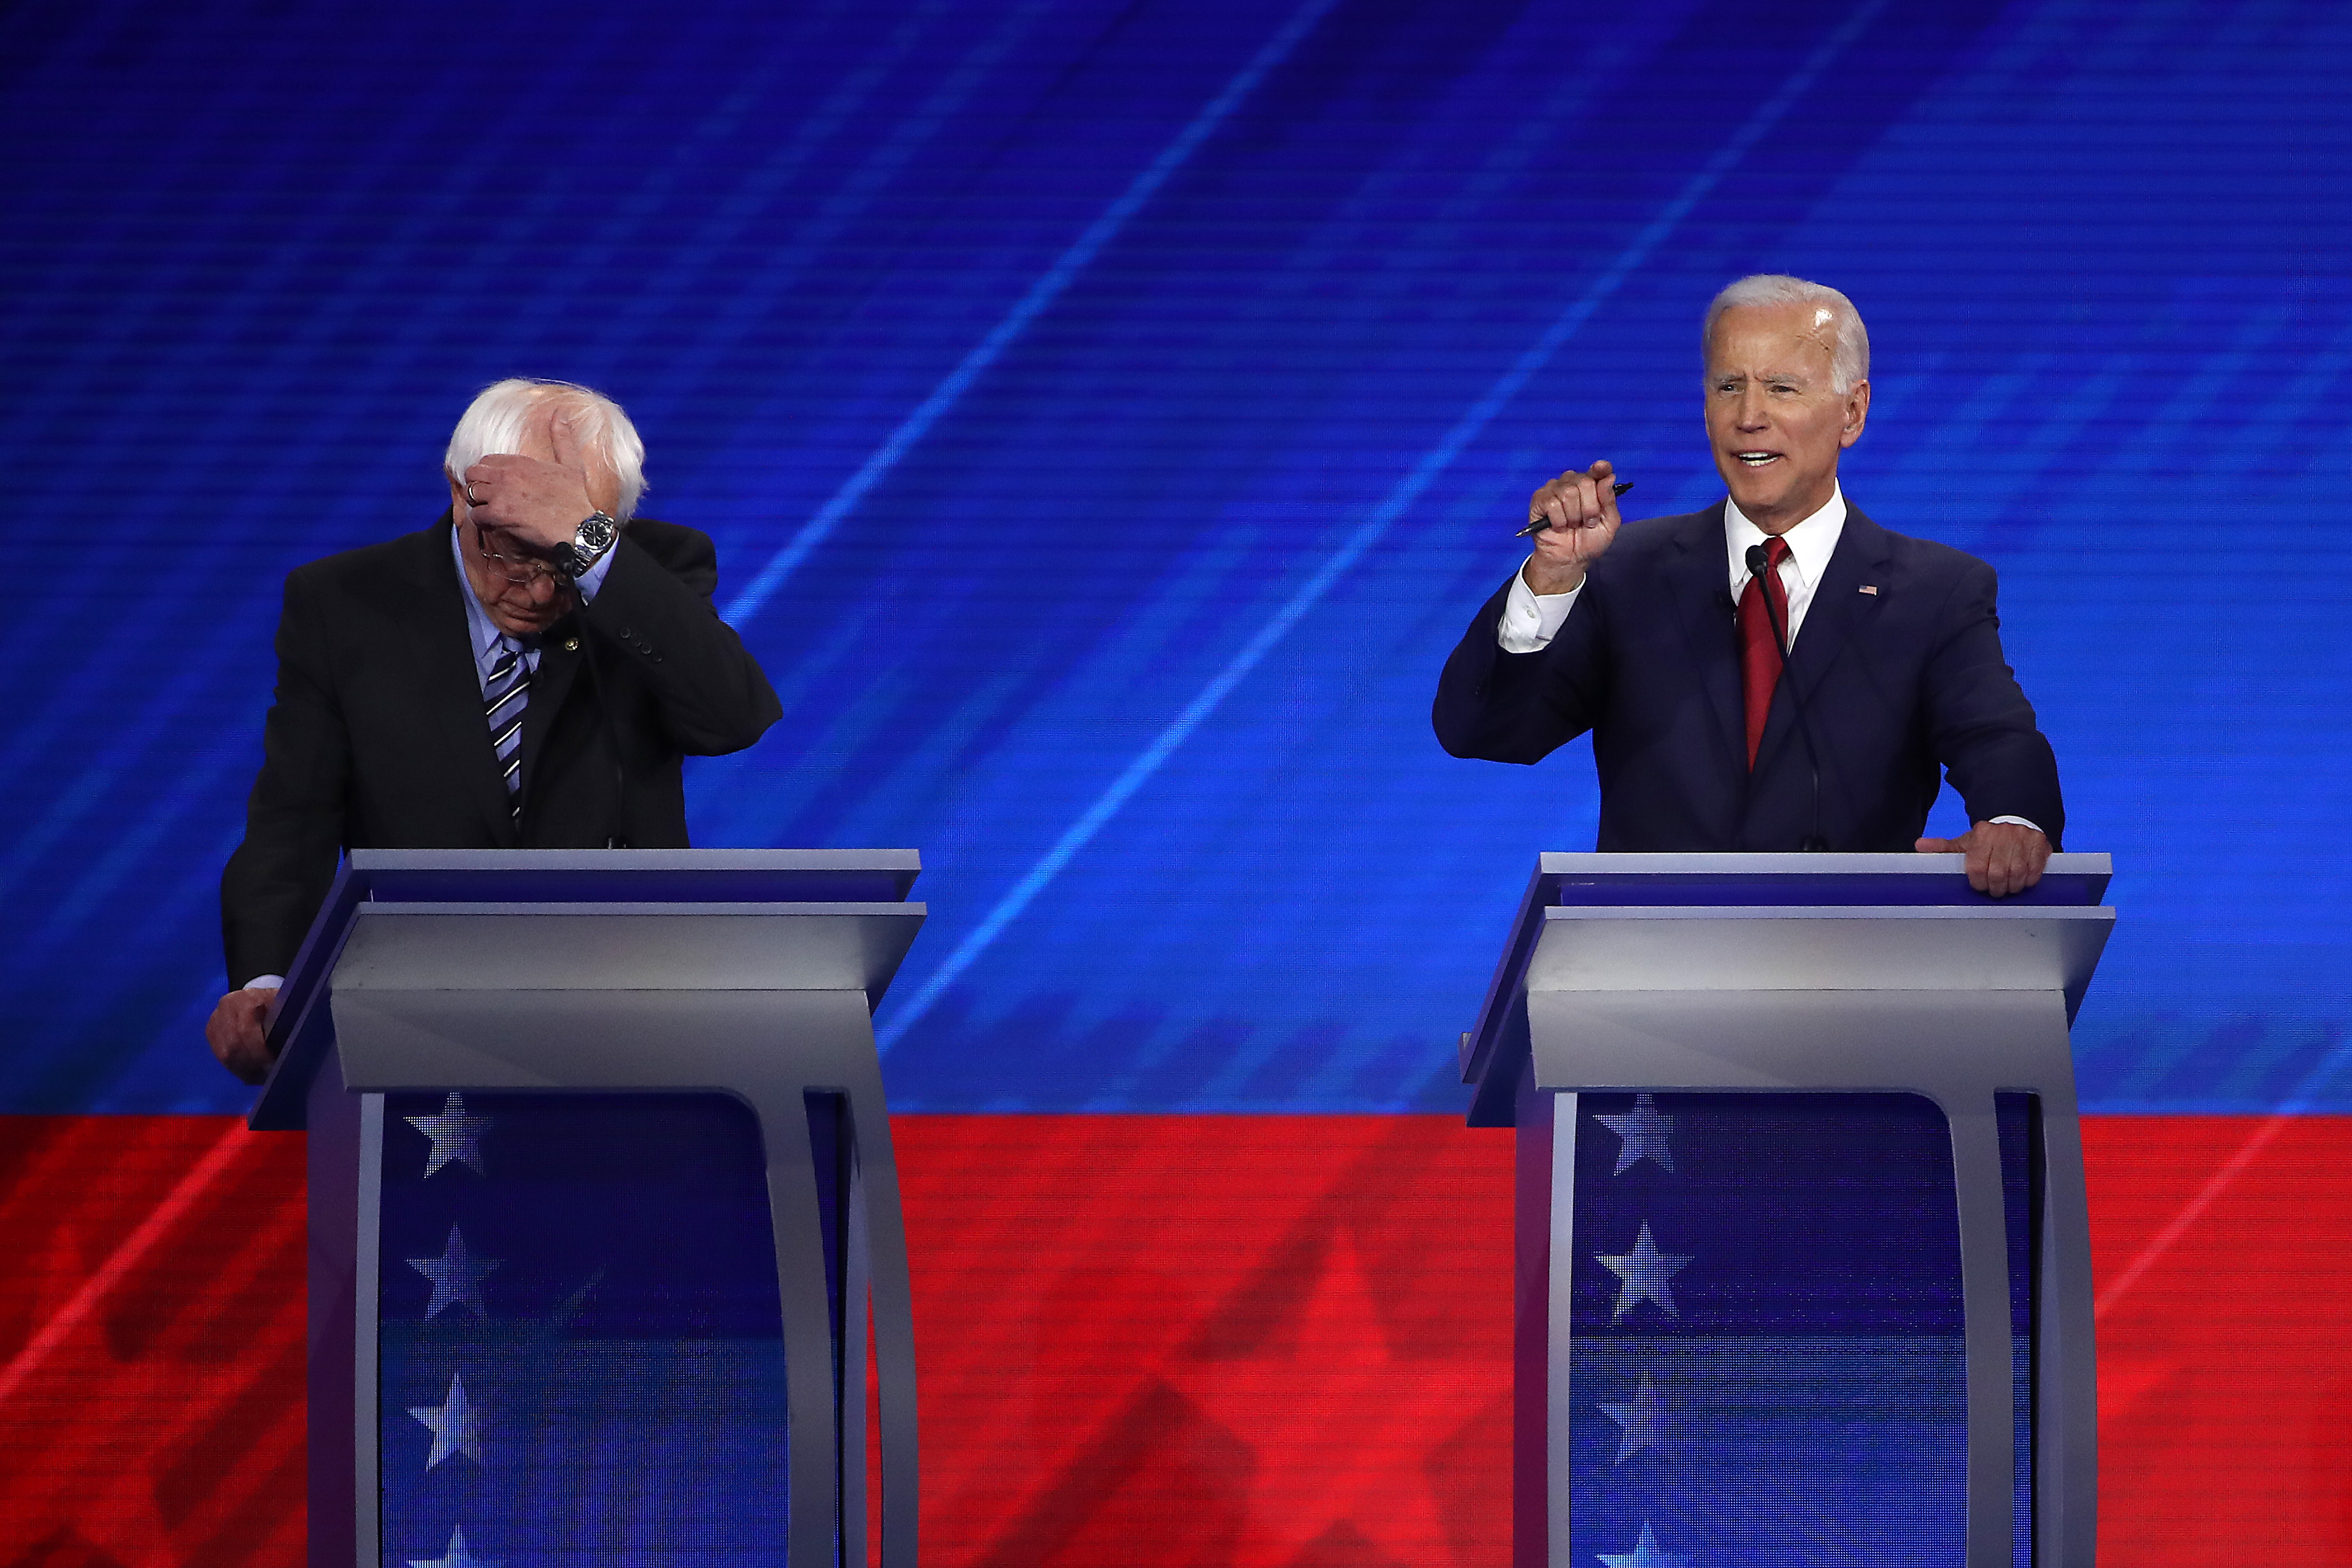 HOUSTON, TEXAS - SEPTEMBER 12: Democratic presidential candidate Sen. Bernie Sanders (I-VT) gestures as former Vice President Joe Biden speaks during the Democratic Presidential Debate at Texas Southern University's Health and PE Center on September 12, 2019 in Houston, Texas. Ten Democratic presidential hopefuls were chosen from the larger field of candidates to participate in the debate hosted by ABC News in partnership with Univision. (Photo by Win McNamee/Getty Images)